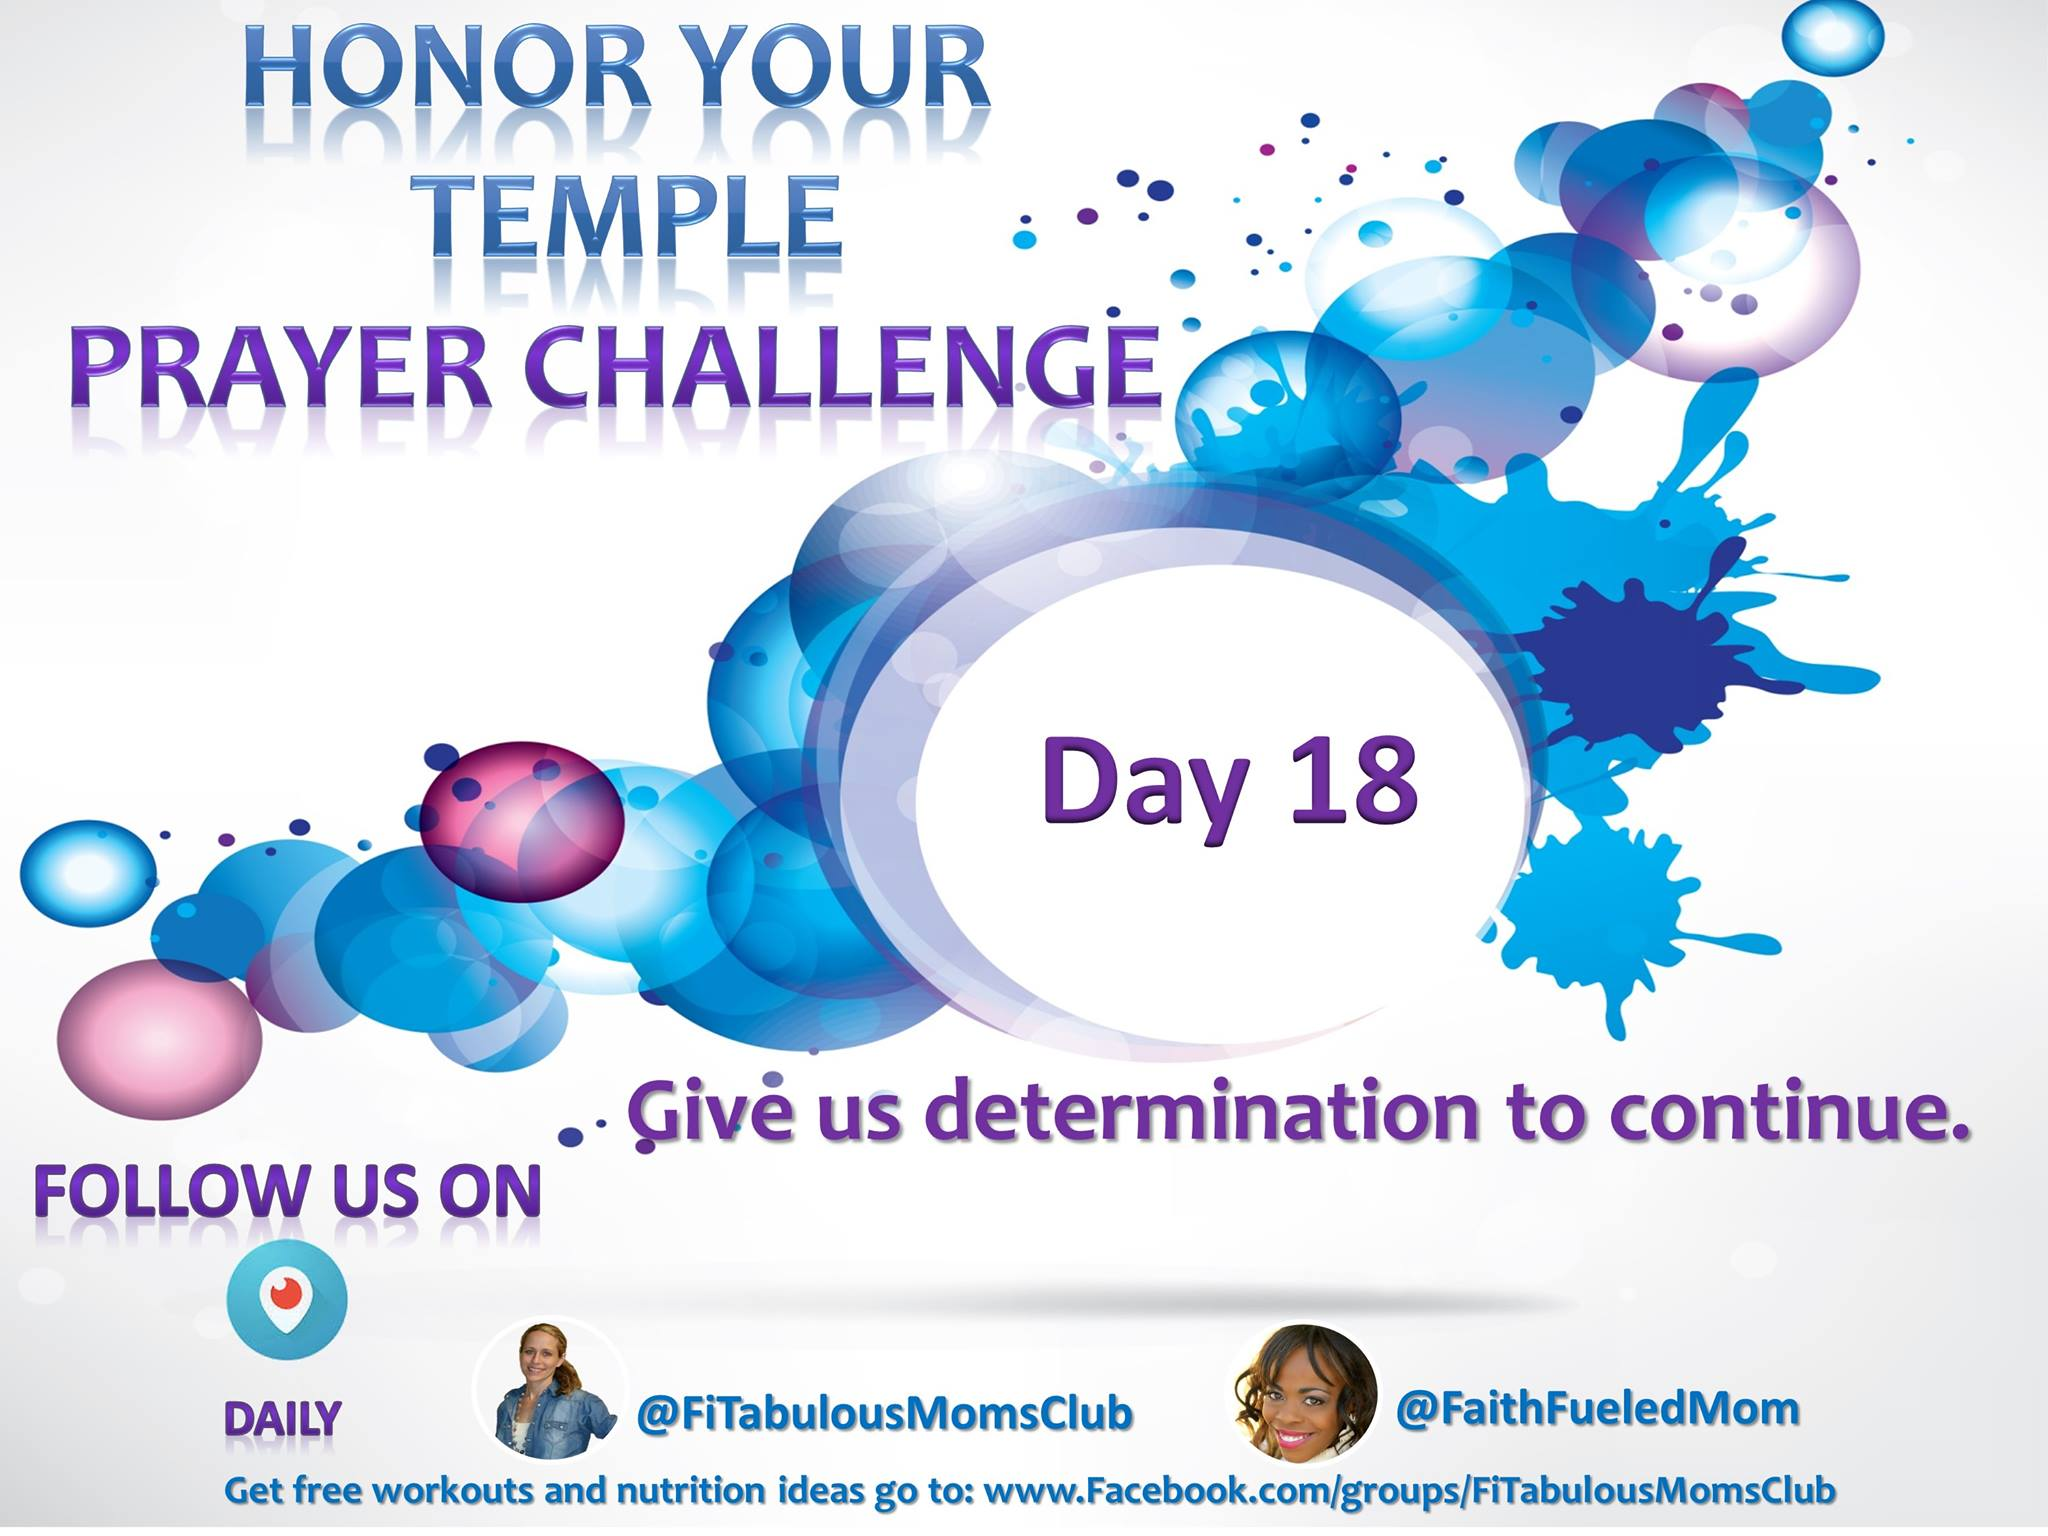 Day 18 Honor Your Temple Prayer Challenge